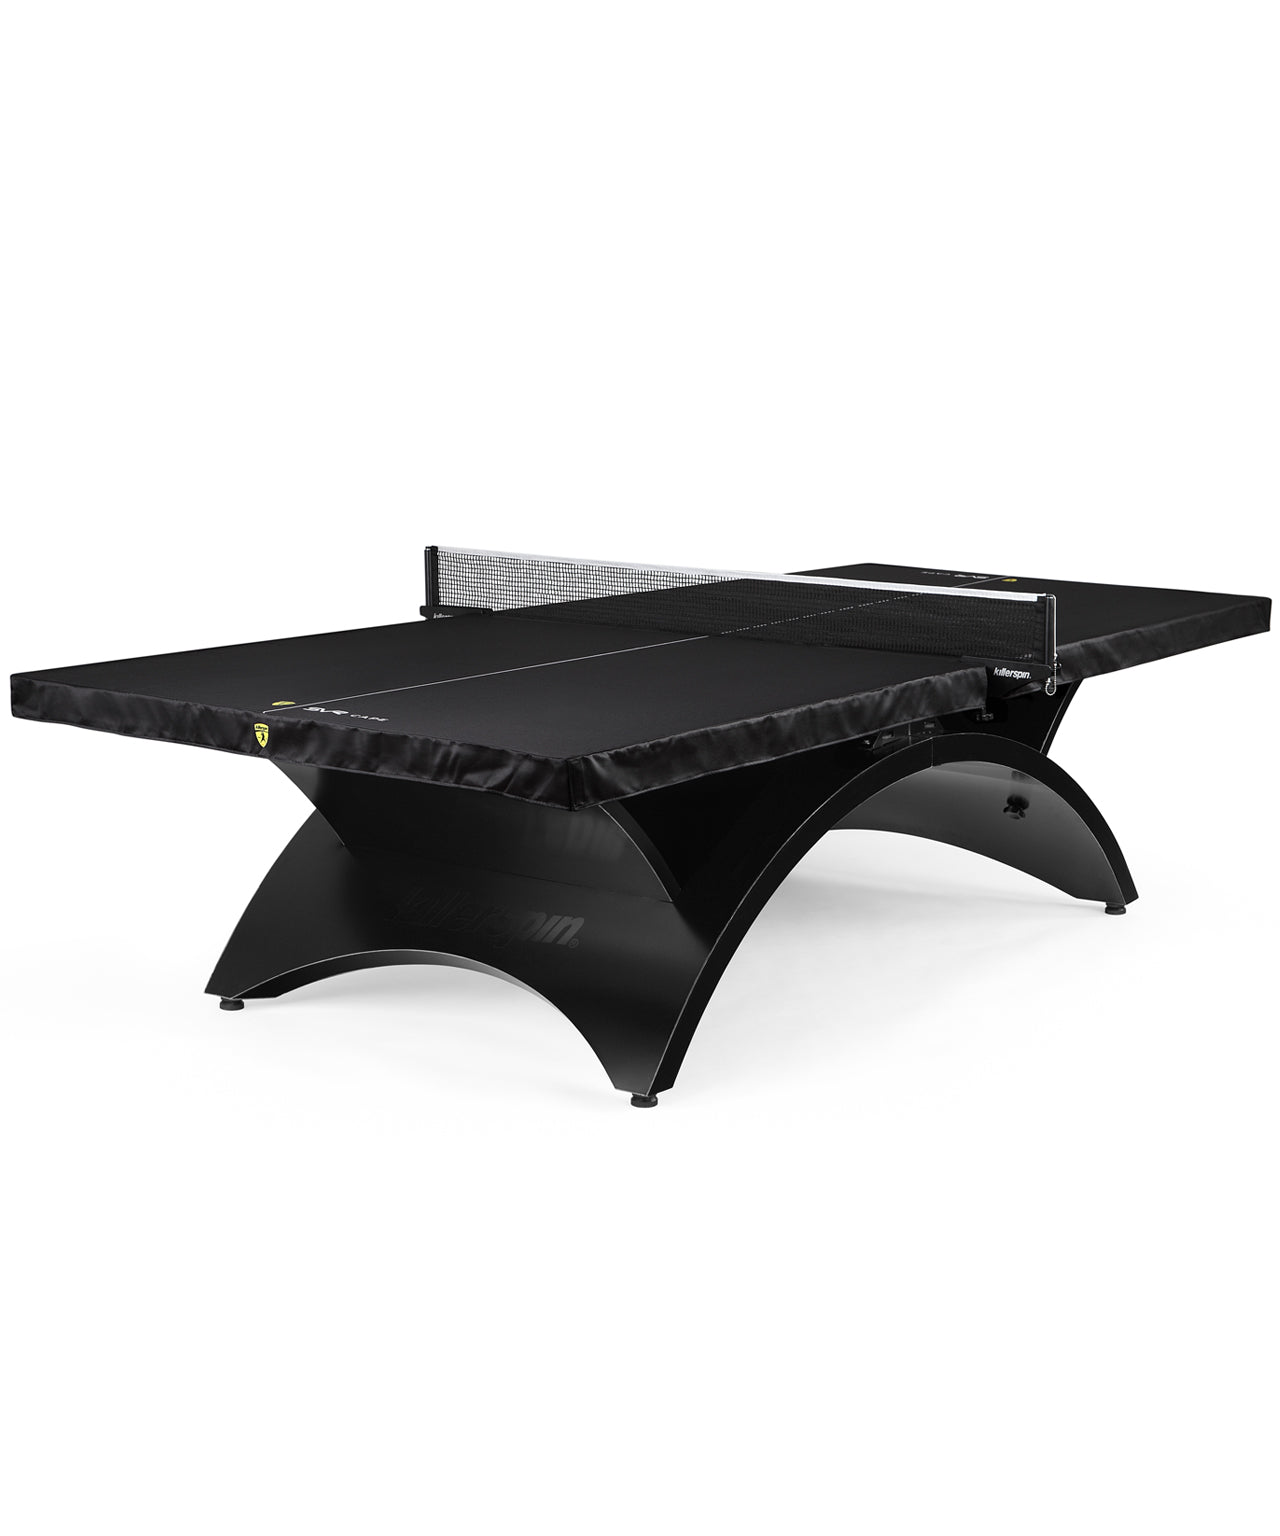 SVR Cape Ping Pong Table Cover